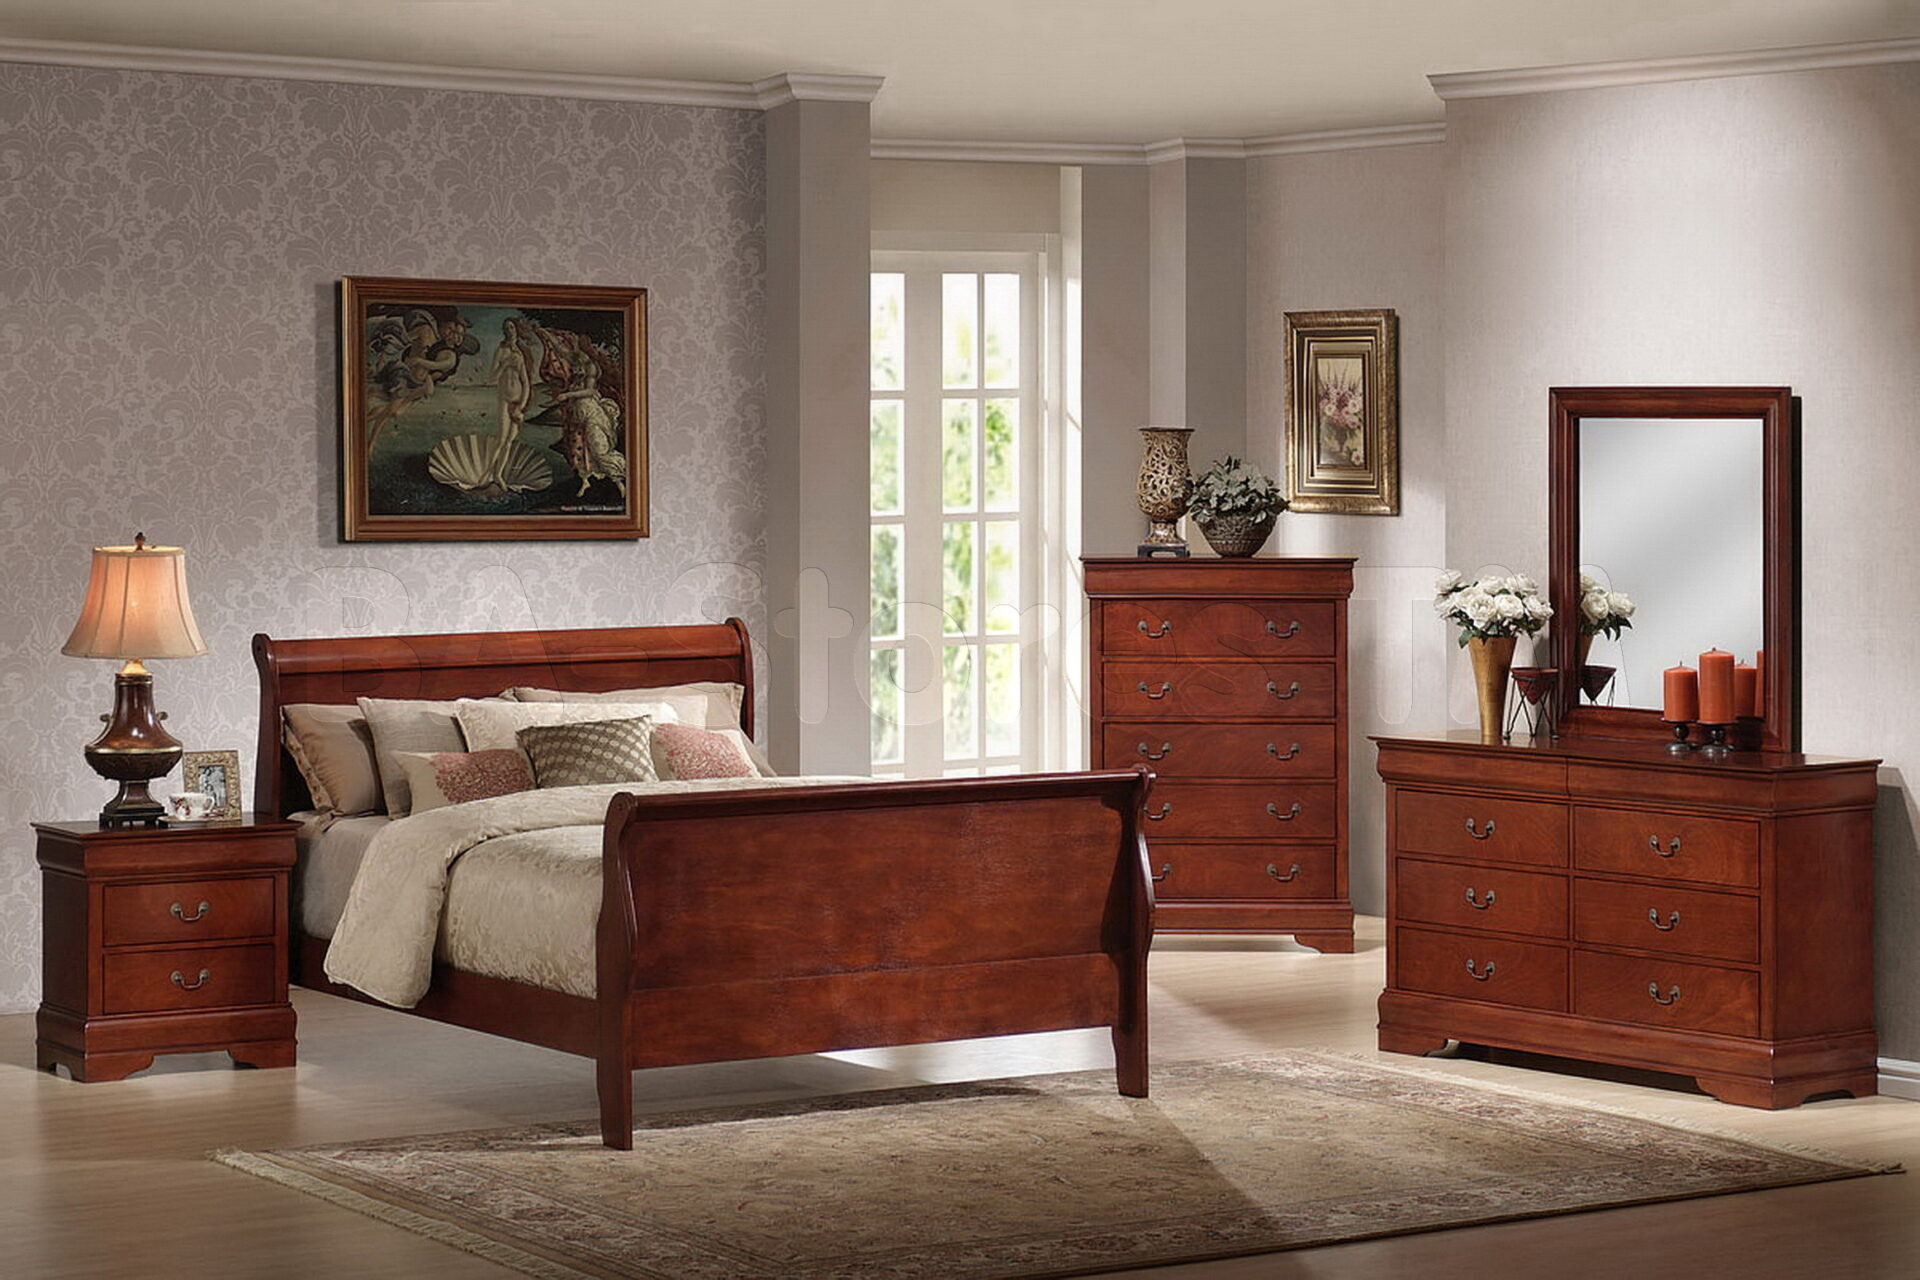 Cherry wood bedroom furniture archives wooden furniture hub for Cherry furniture